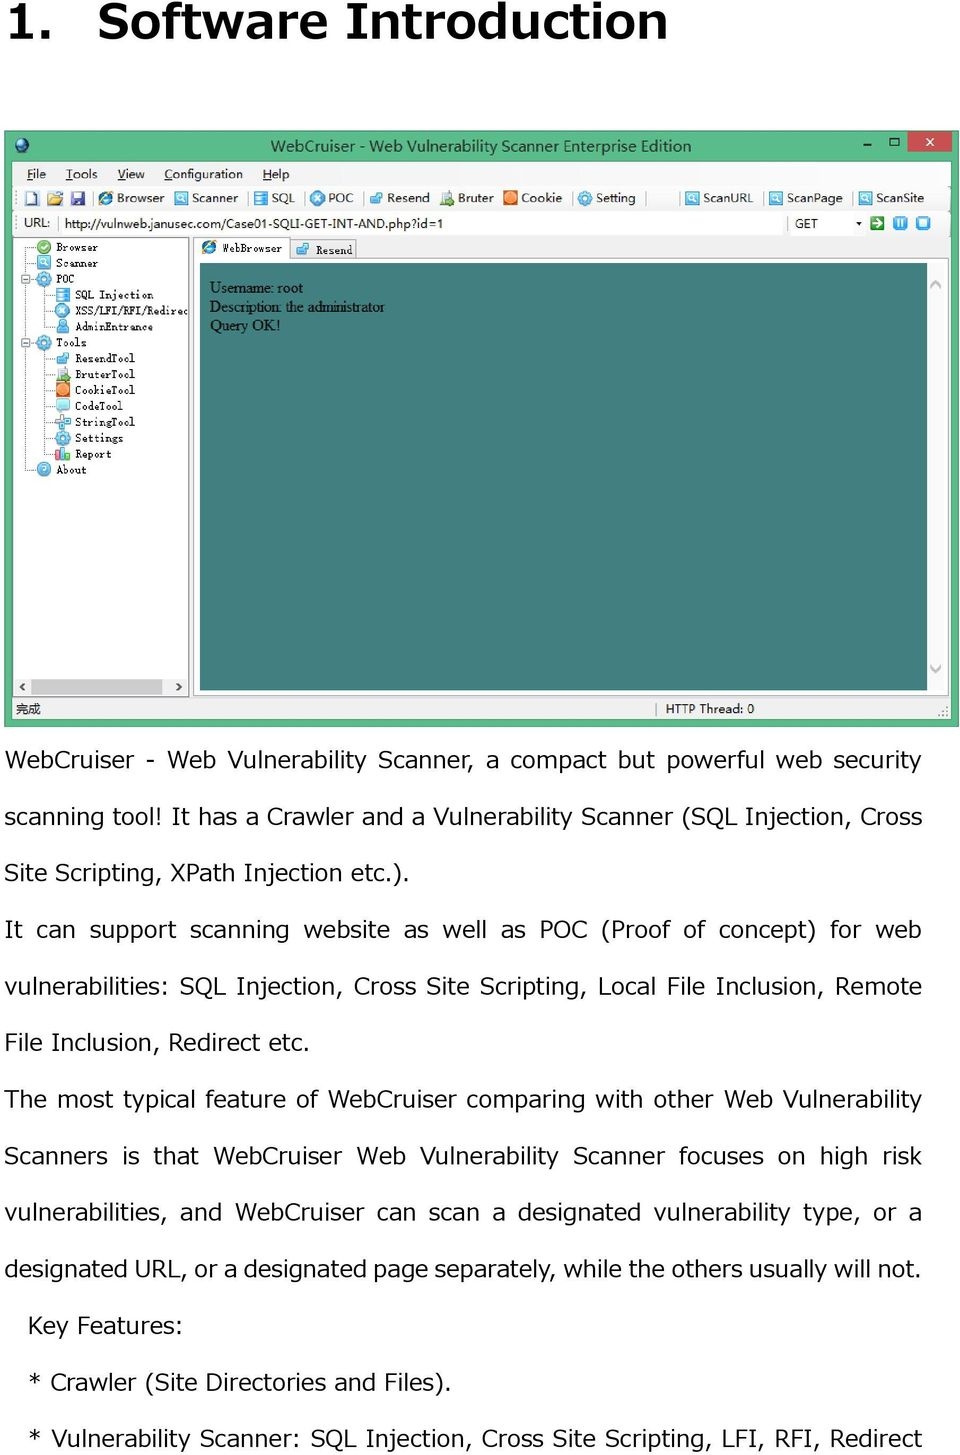 WebCruiser Web Vulnerability Scanner User Guide - PDF